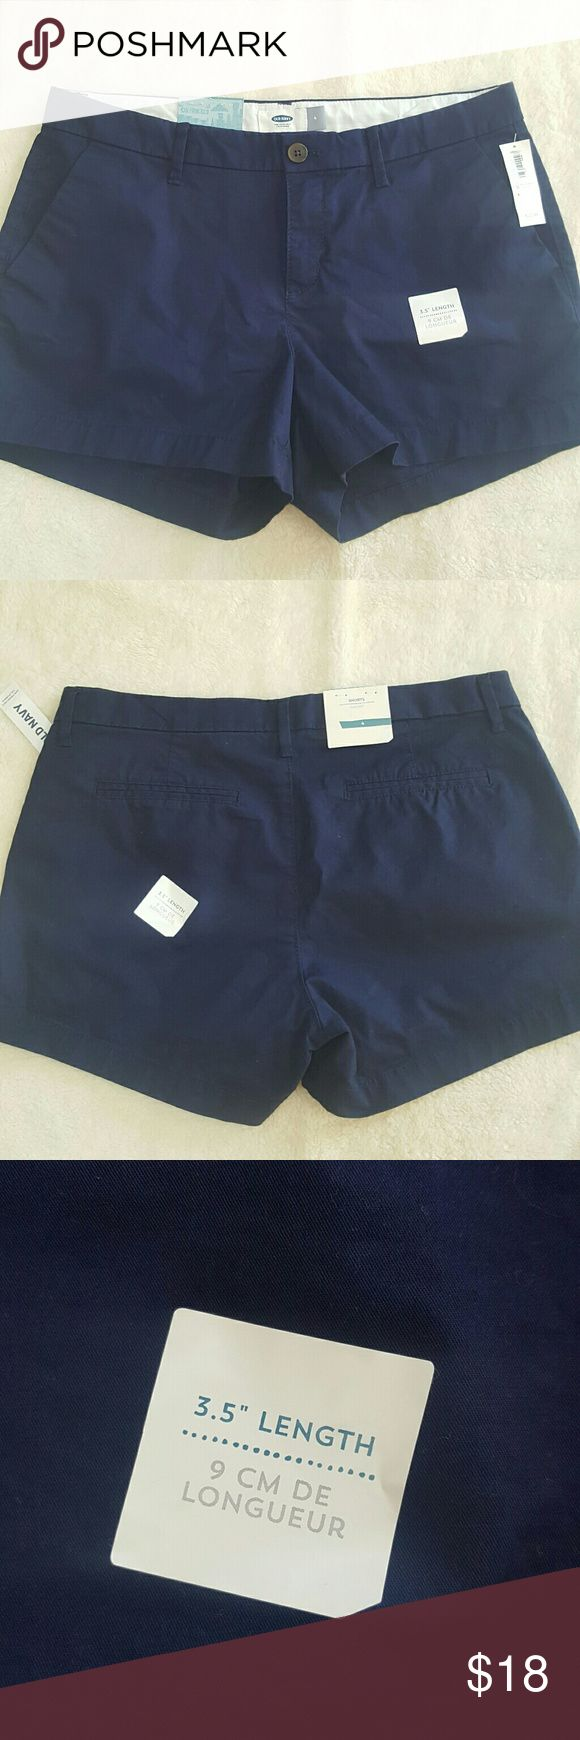 [Old Navy] Navy Blue Chino Shorts NWT Nice and neutral for summer! These are a 3.5 length inseam and brand new with tags.   Open to offers! Bundle and save 20%! Old Navy Shorts